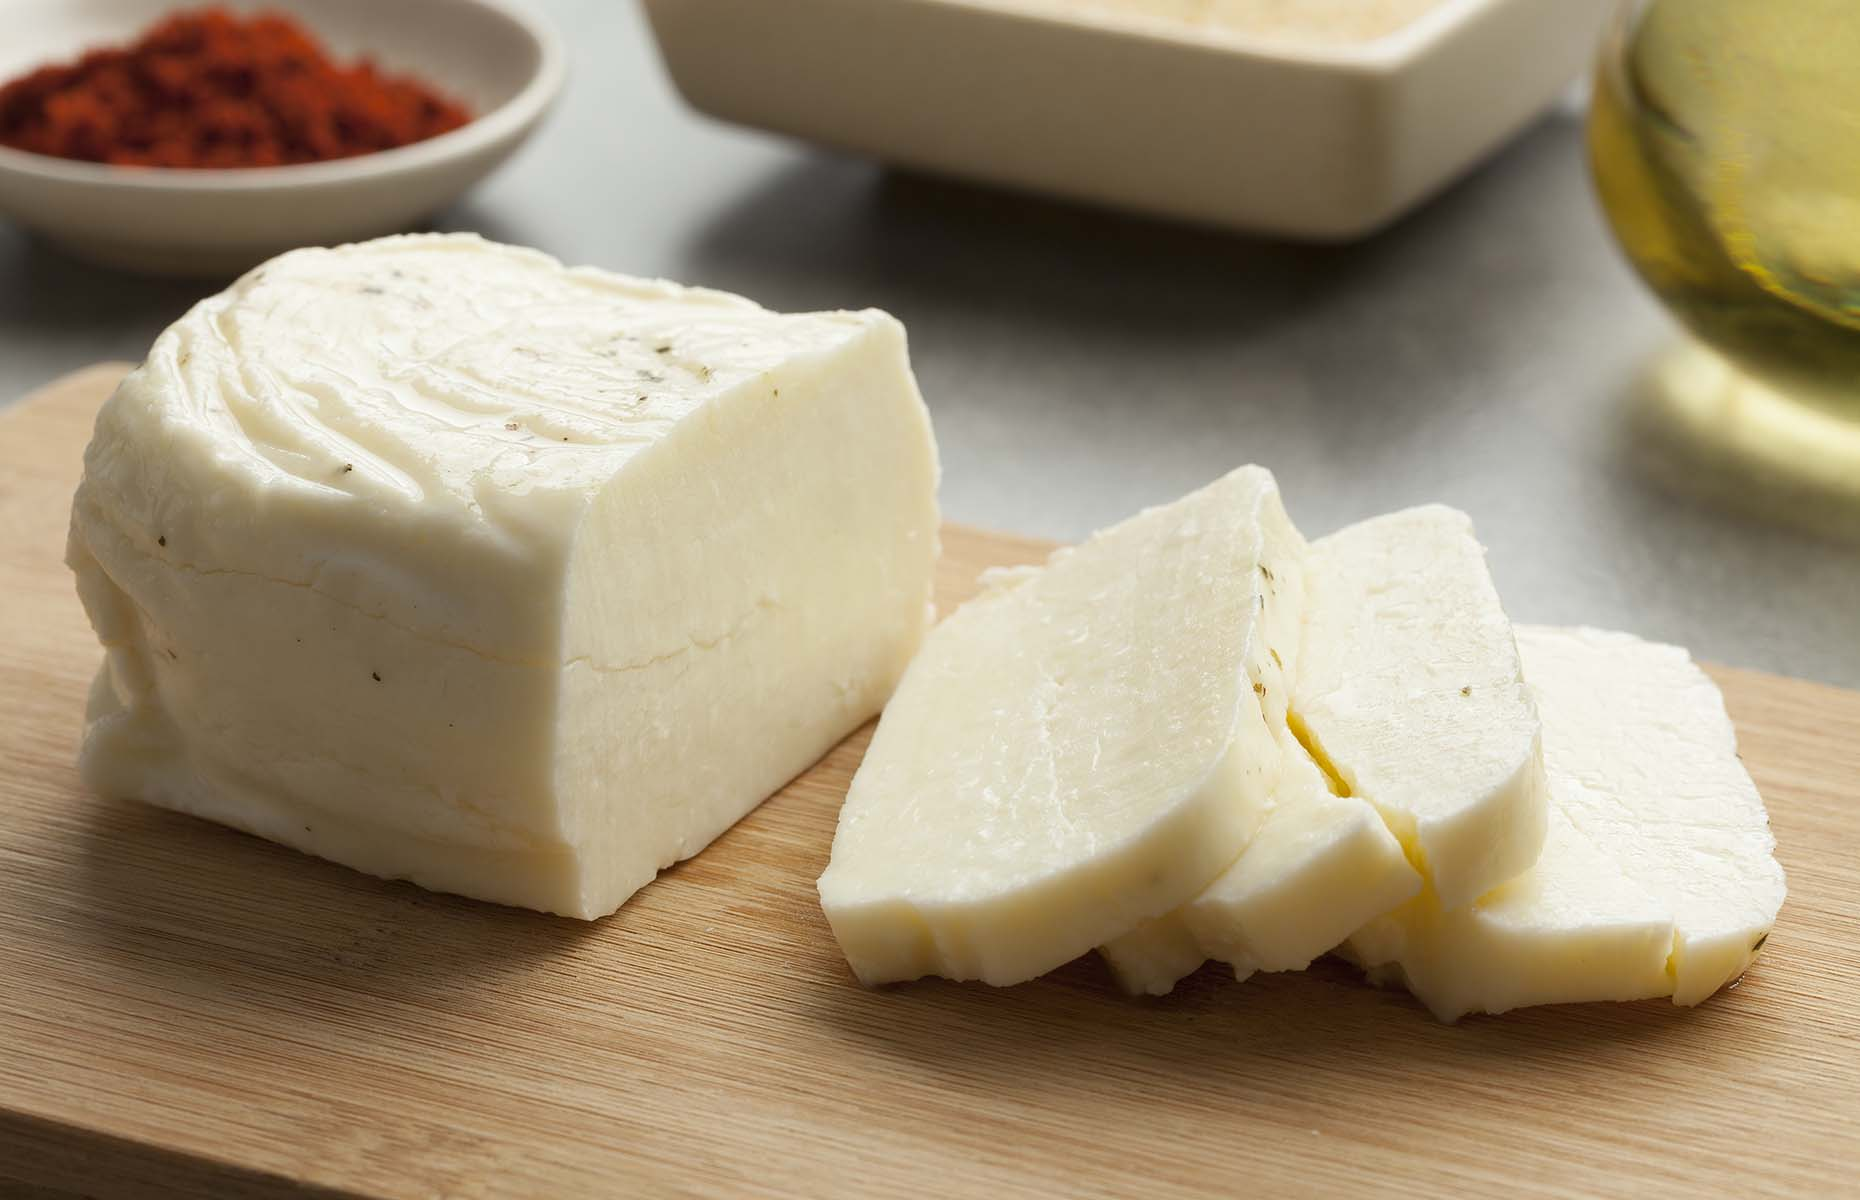 Raw halloumi (Image: Picture Partners/Shutterstock)